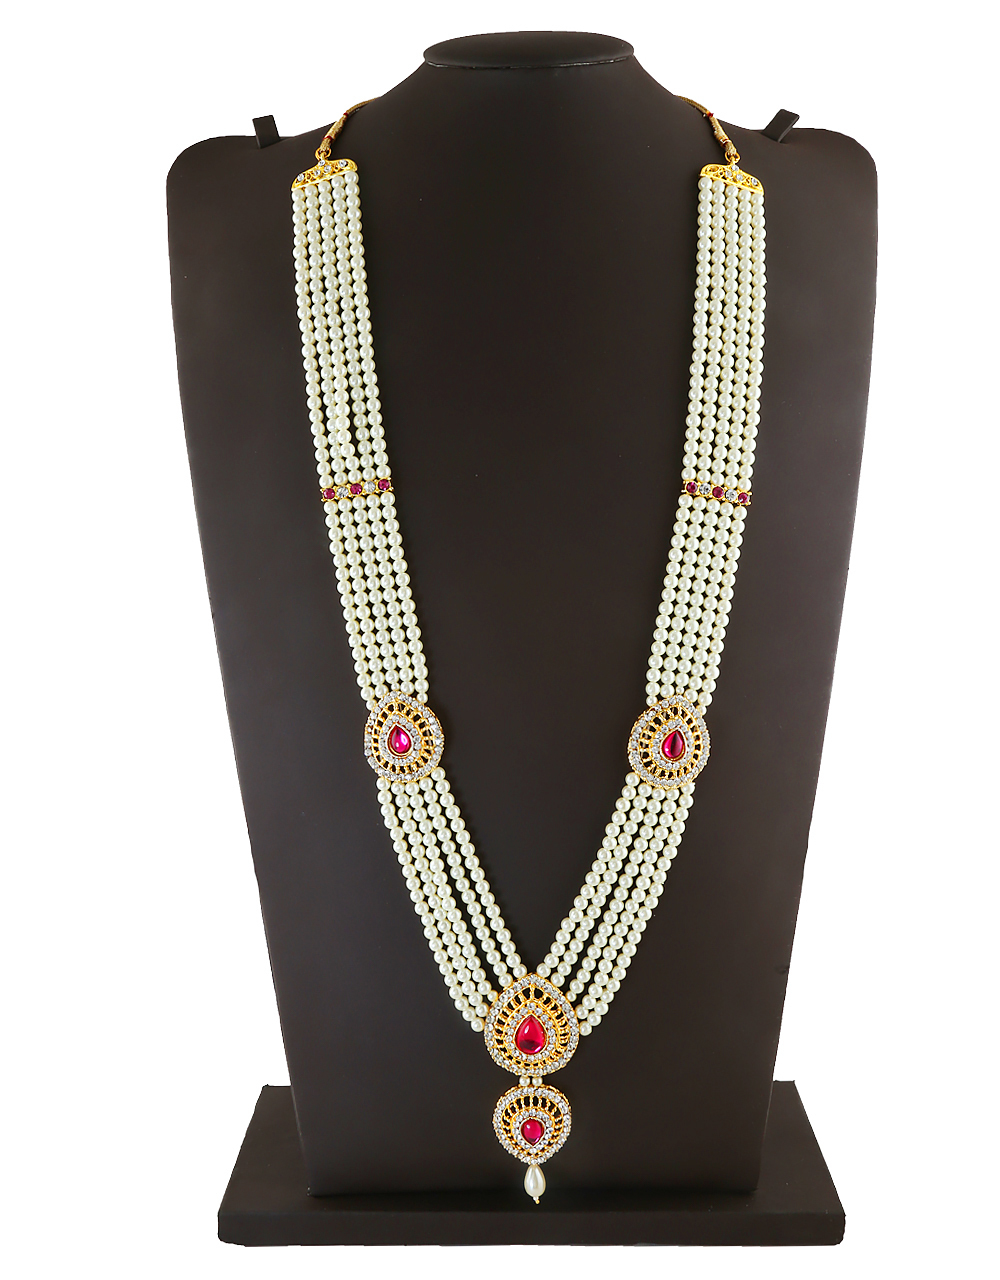 Pink Colour Gold Finish Studded With Stones Fancy Mahalaxmi Jewellery